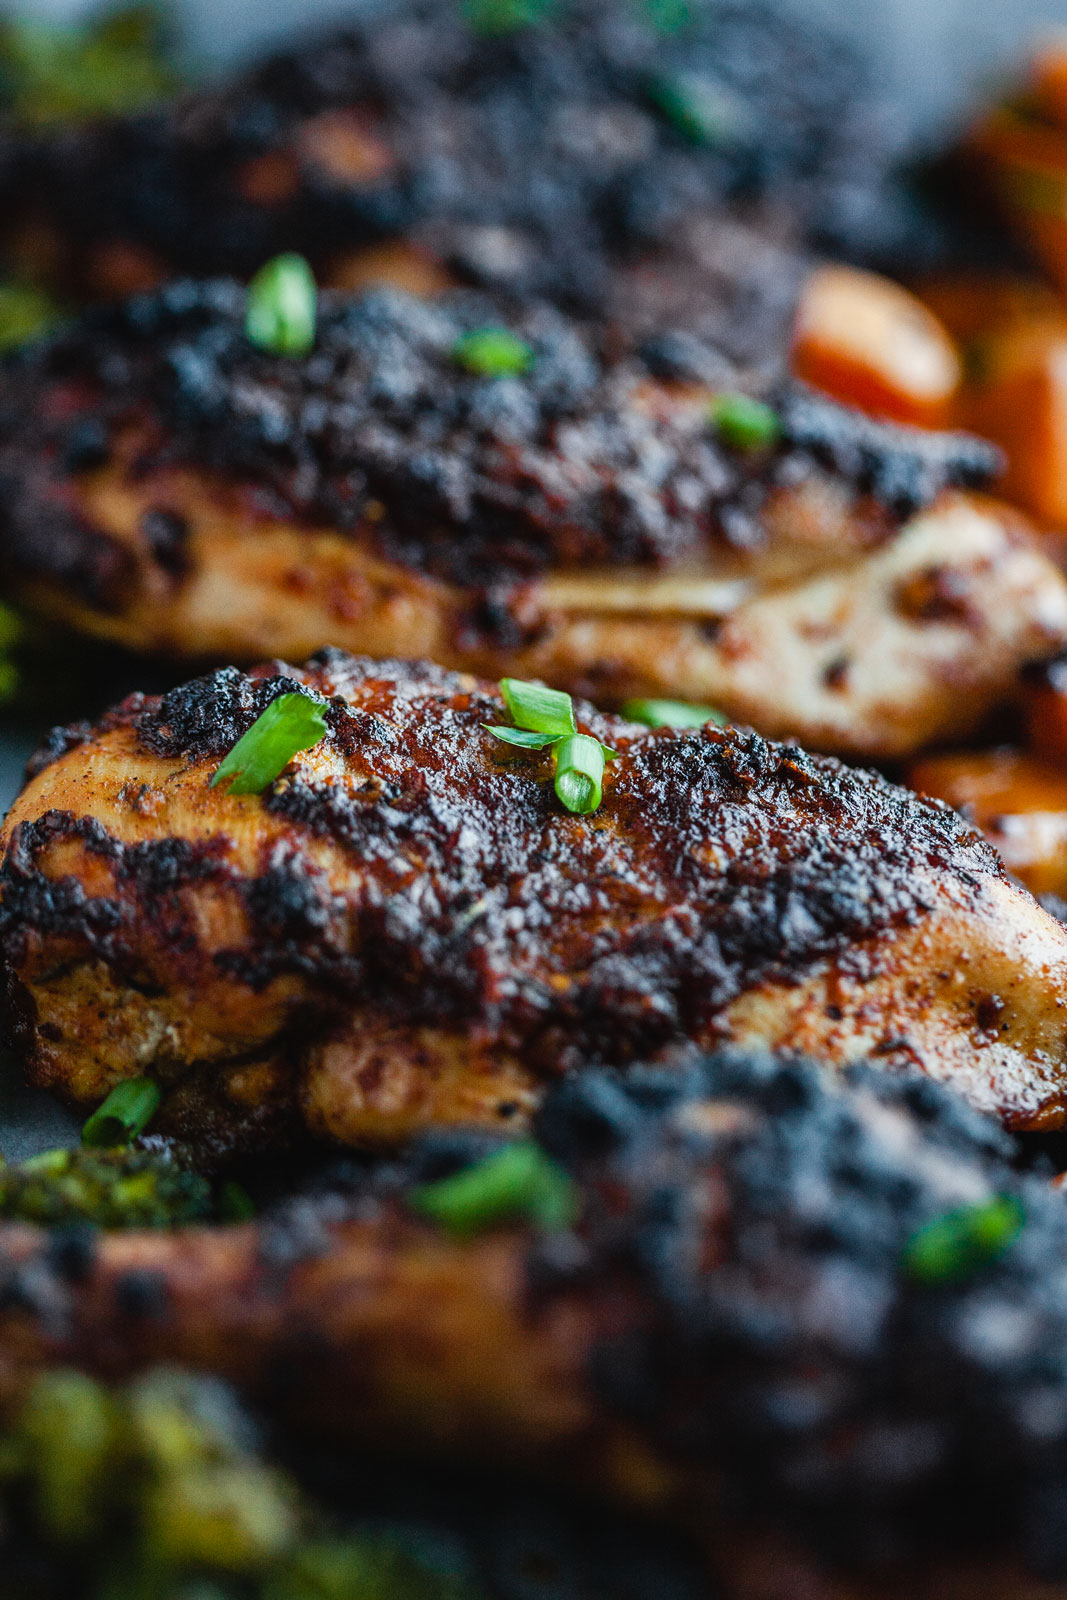 Spicy Blackened Chicken Legs With Sweet Potatoes and Broccoli